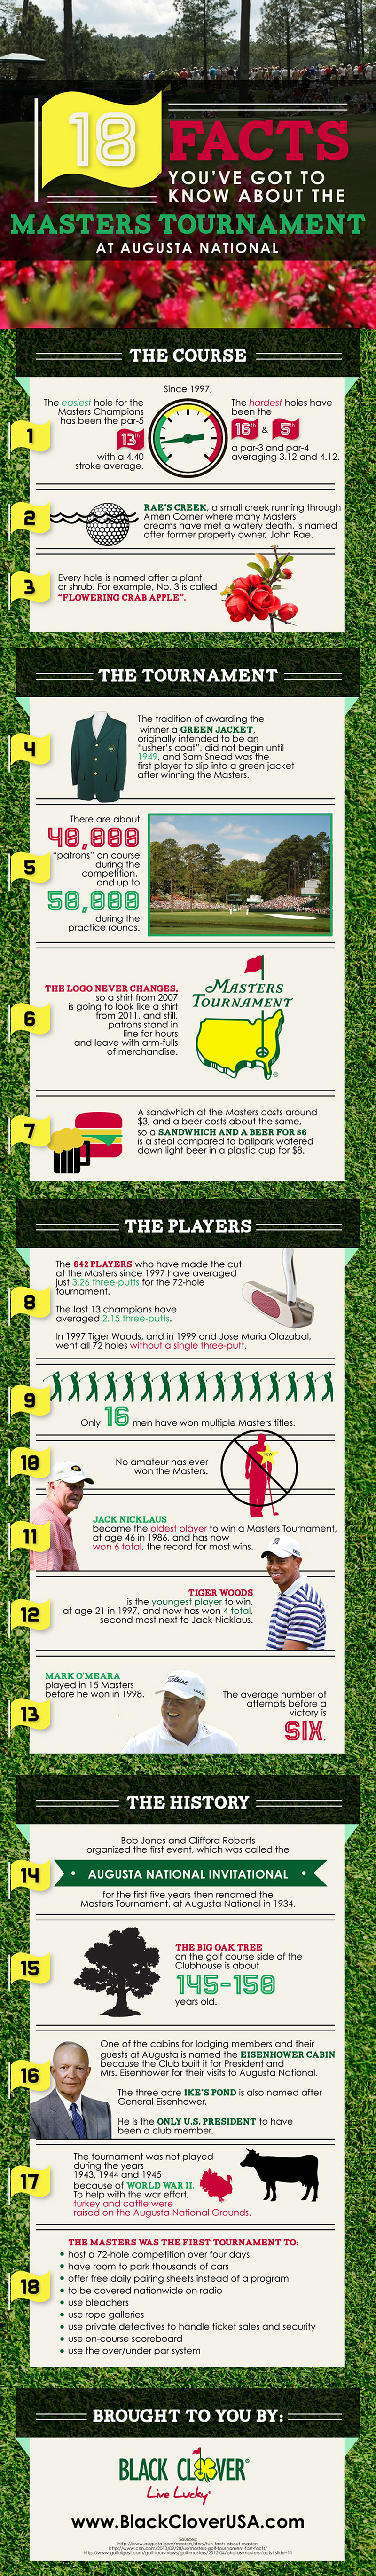 What Do You Know About the Masters?